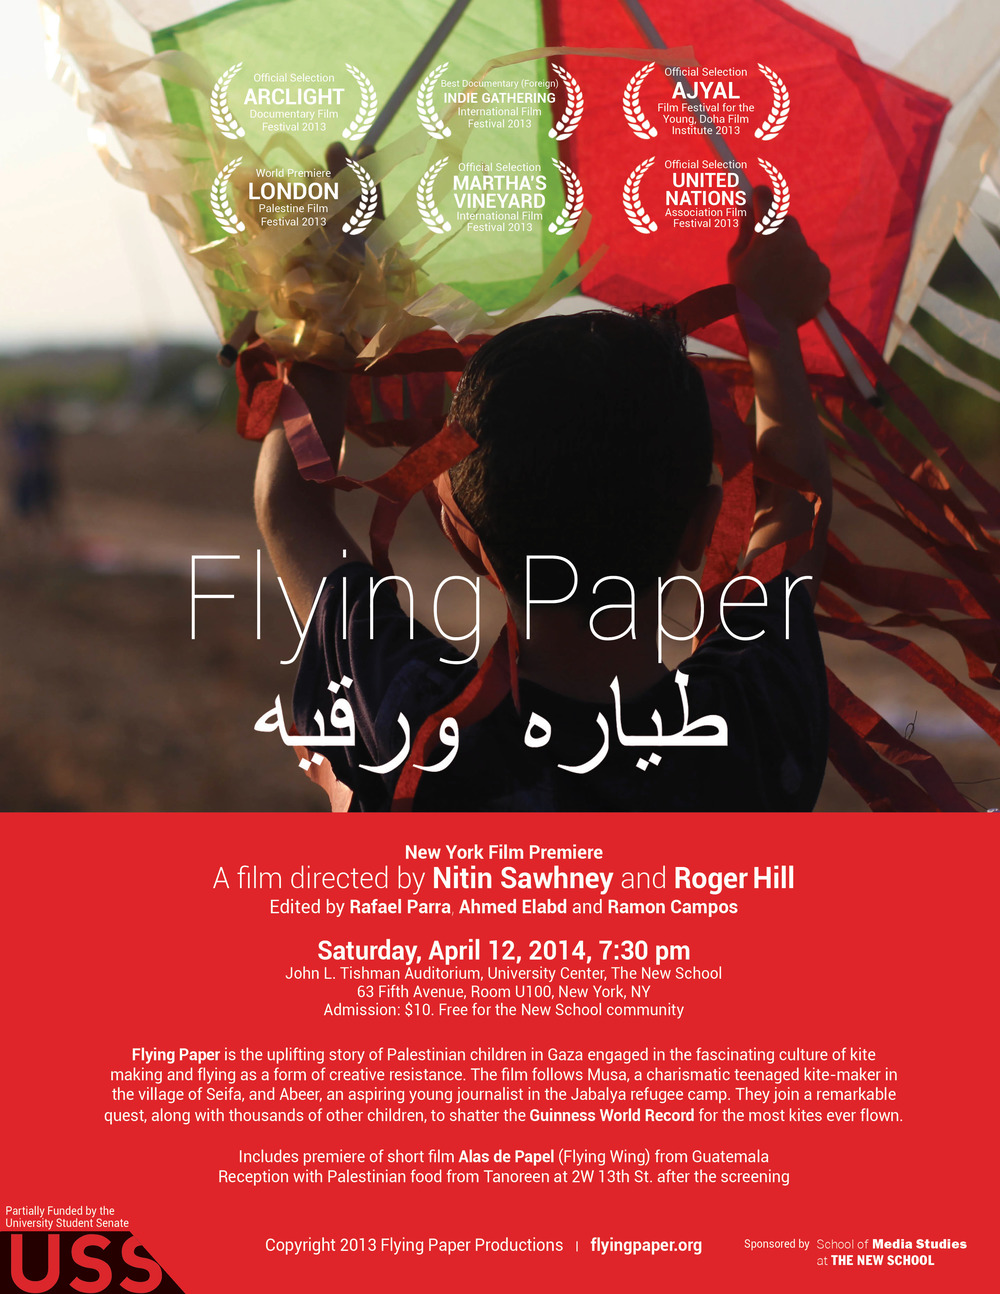 FlyingPaper-web.jpg